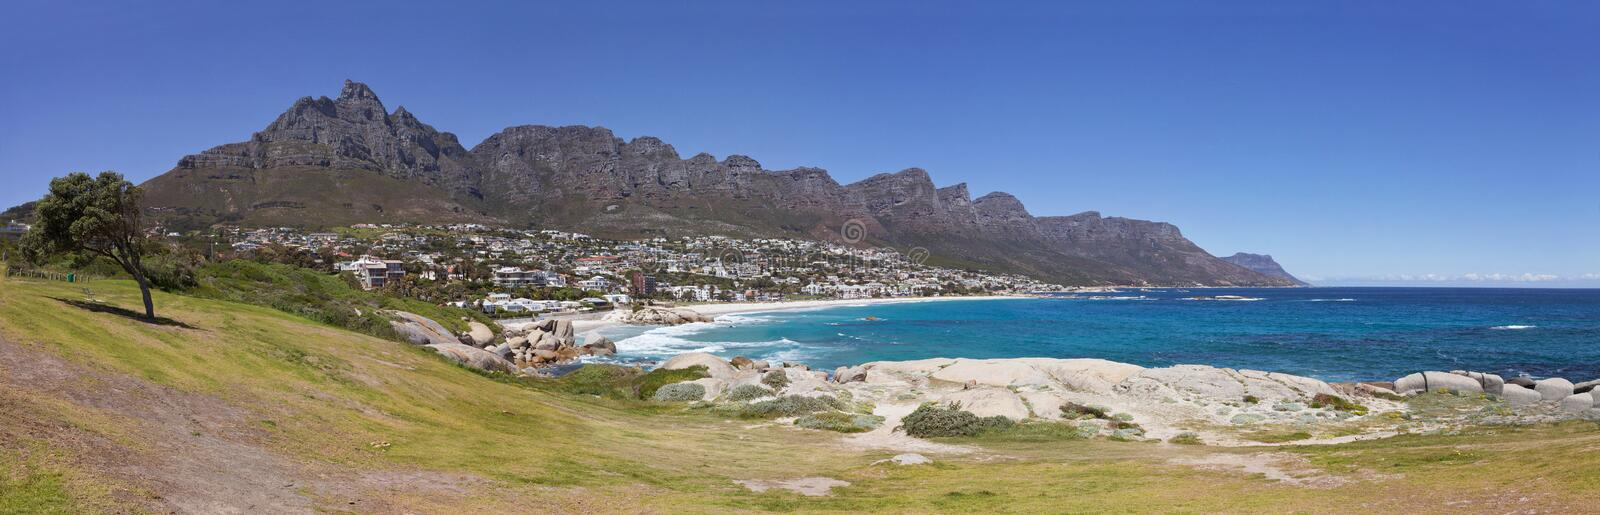 Panoramic view of Camps Bay Beach in Cape Town, South Africa, with green grass, lonaly tree and the Twelve Apostles royalty free stock image